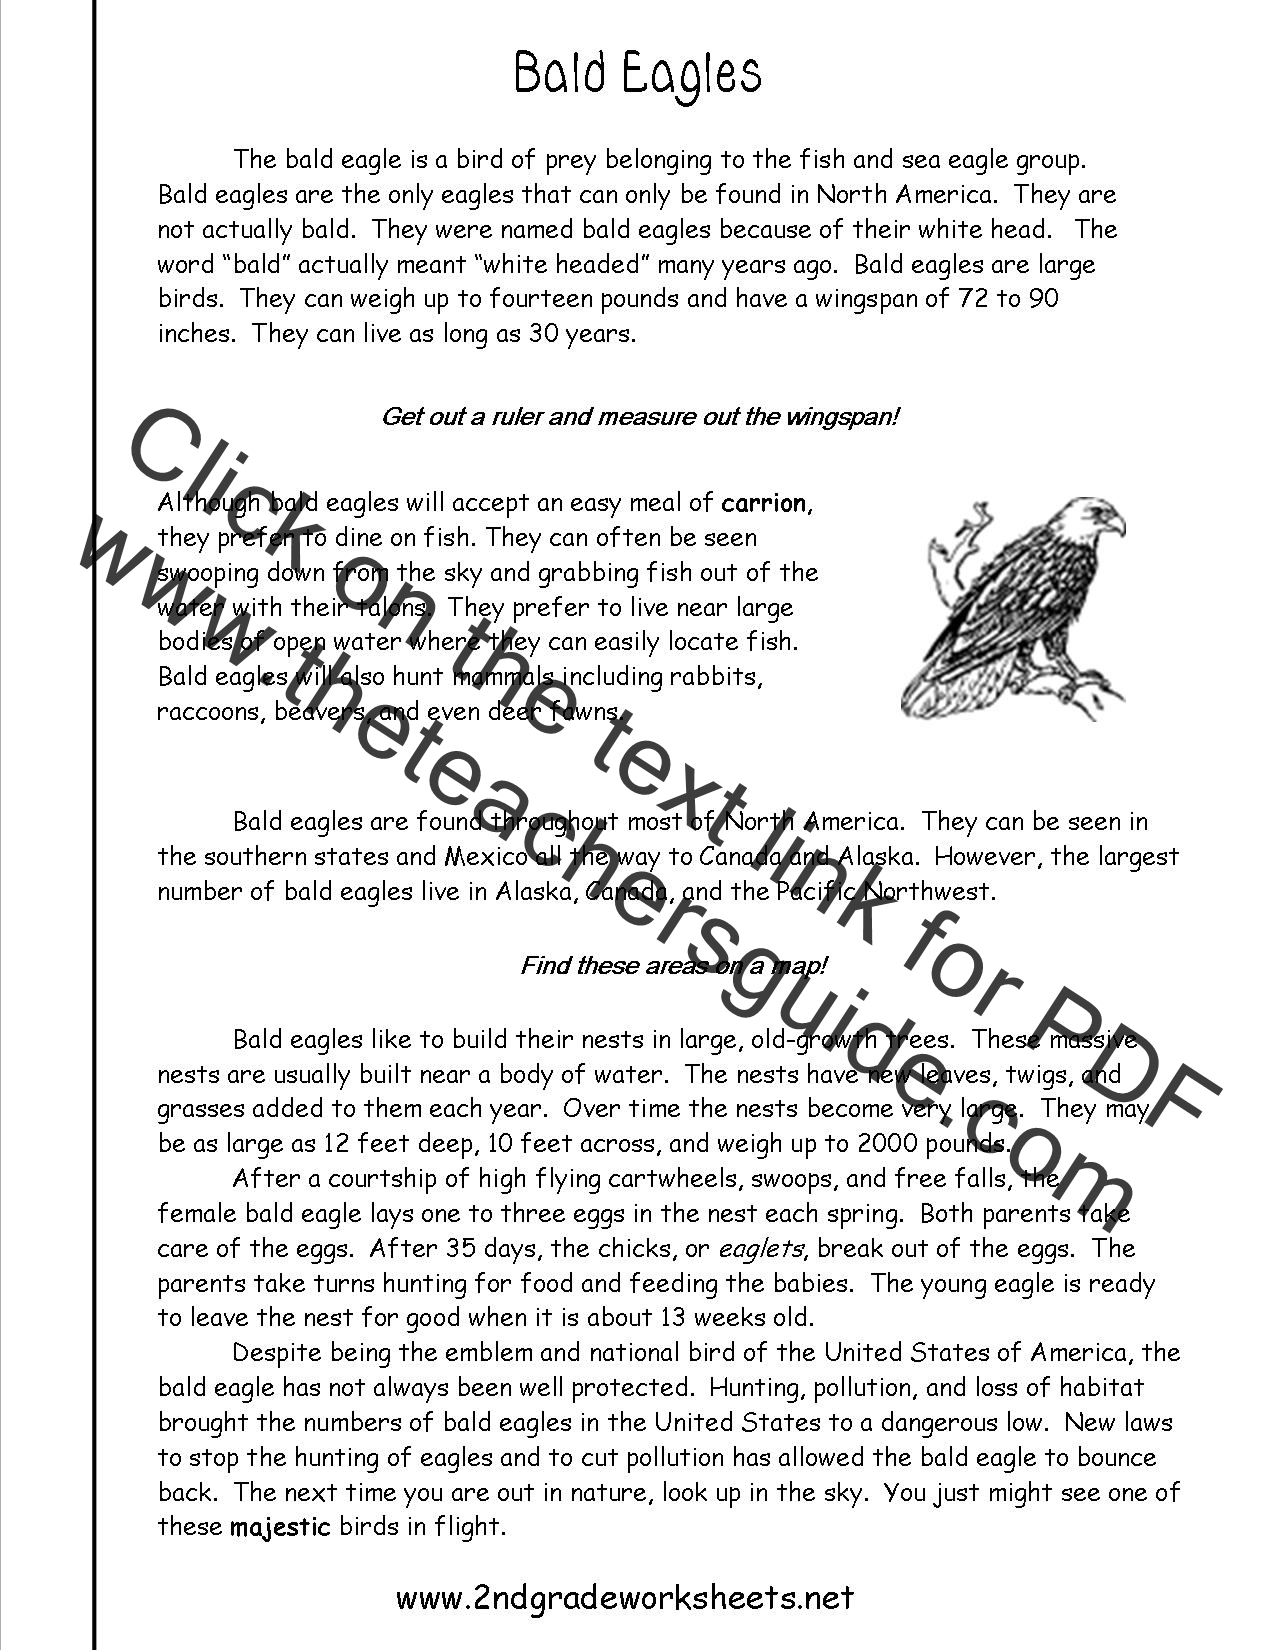 Worksheet Informational Text Worksheets reading informational text worksheets bald eagles